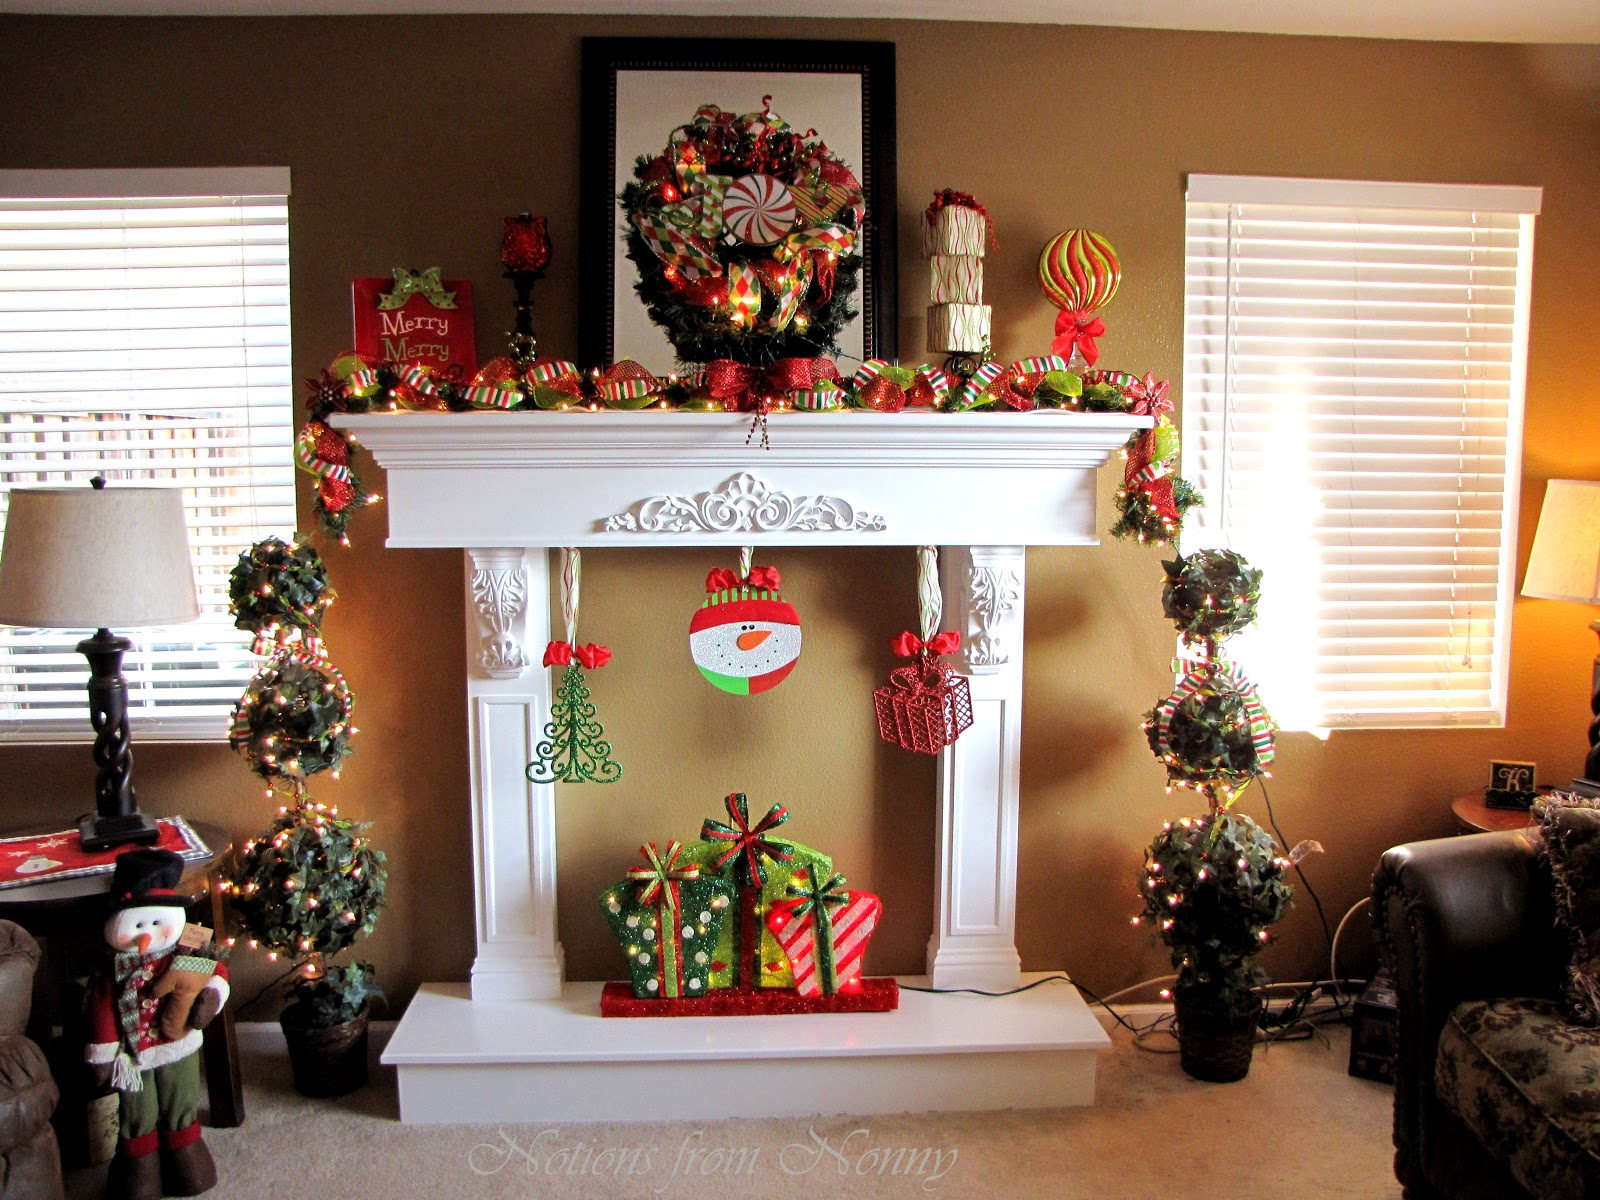 Notions from Nonny: Fabulous Faux Fireplace with Mantle